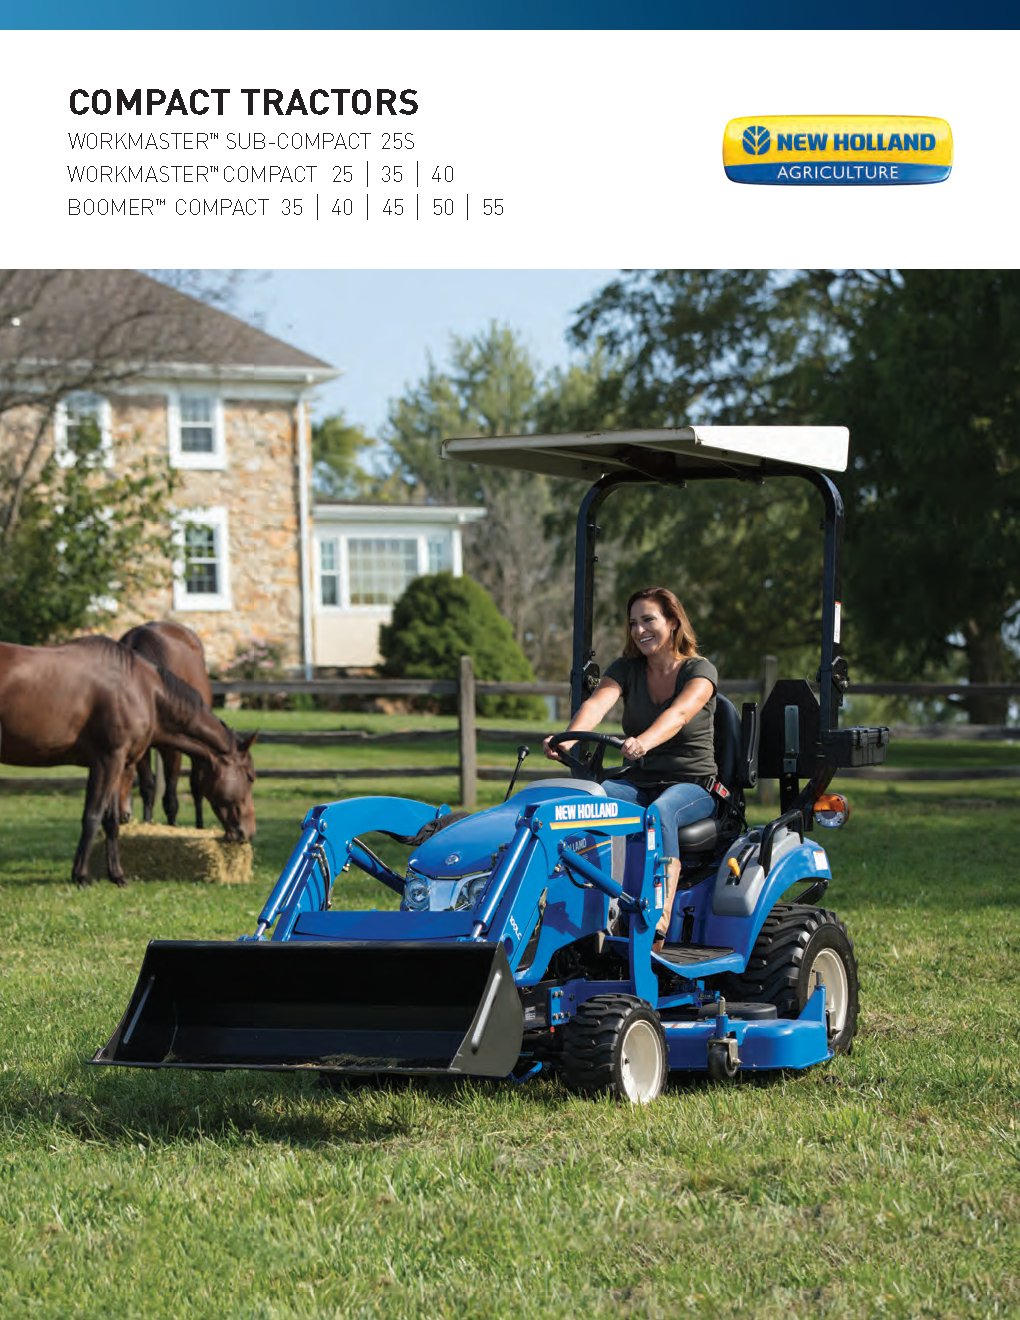 New Holland Compact Tractor Literature